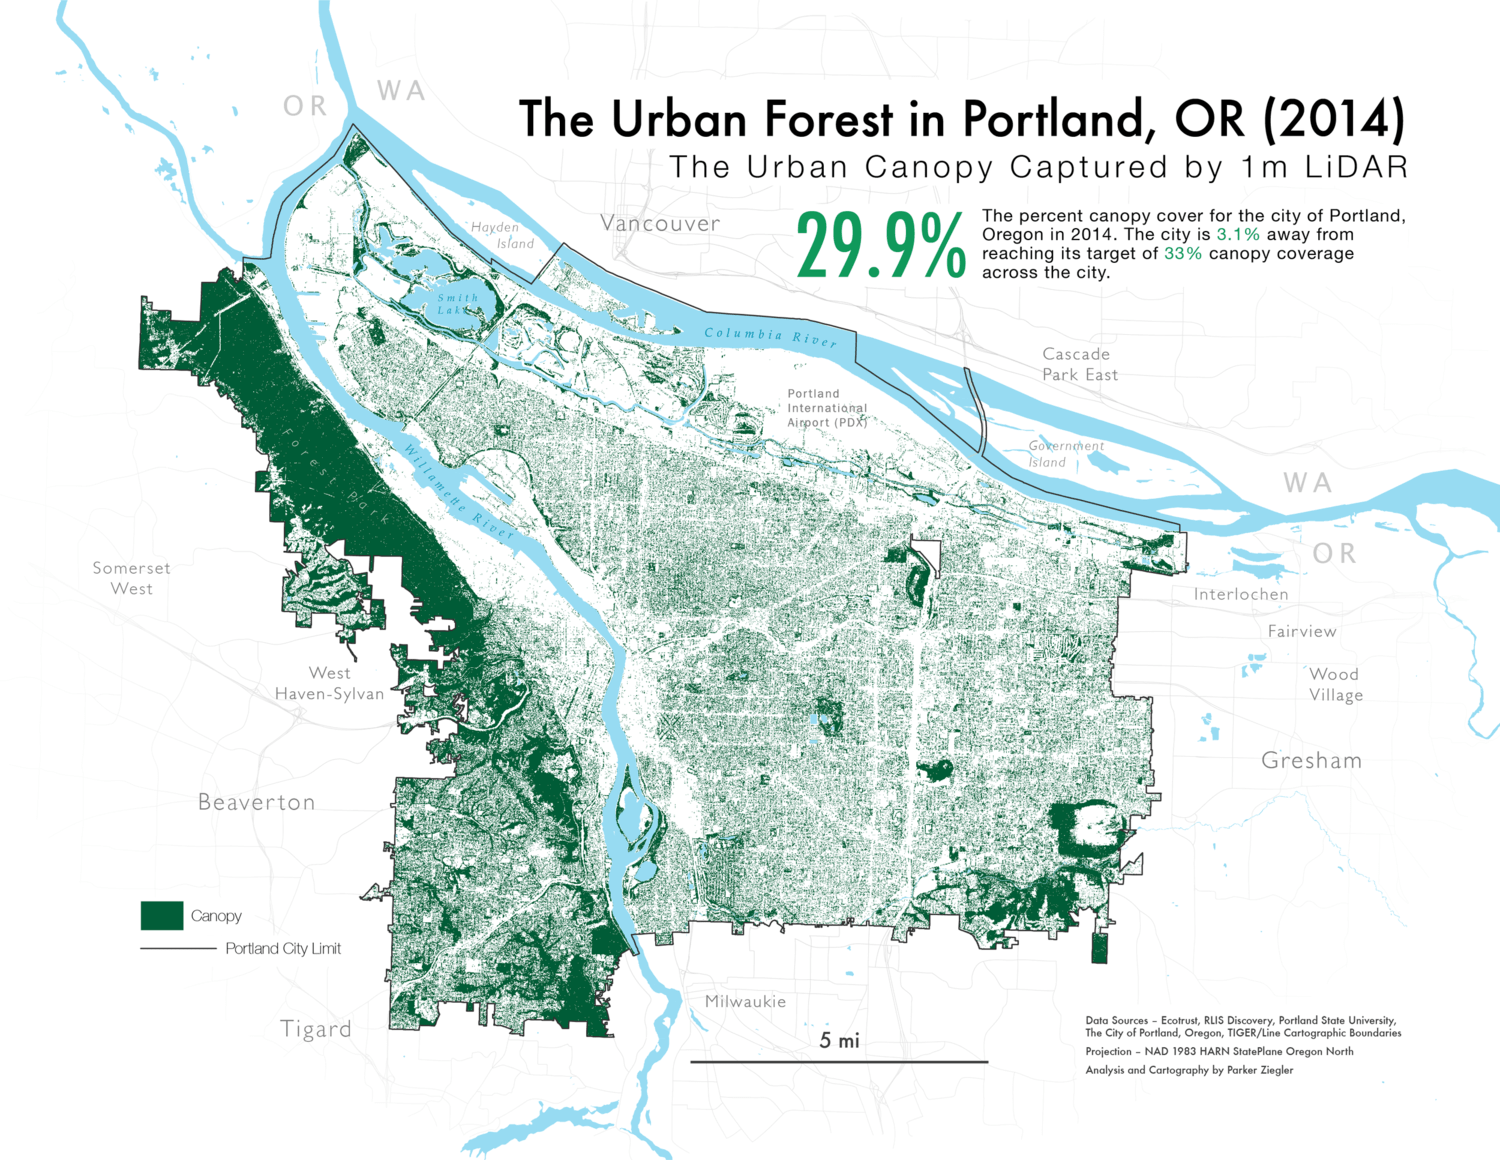 A map of Portland's urban canopy captured using LiDAR in 2014.